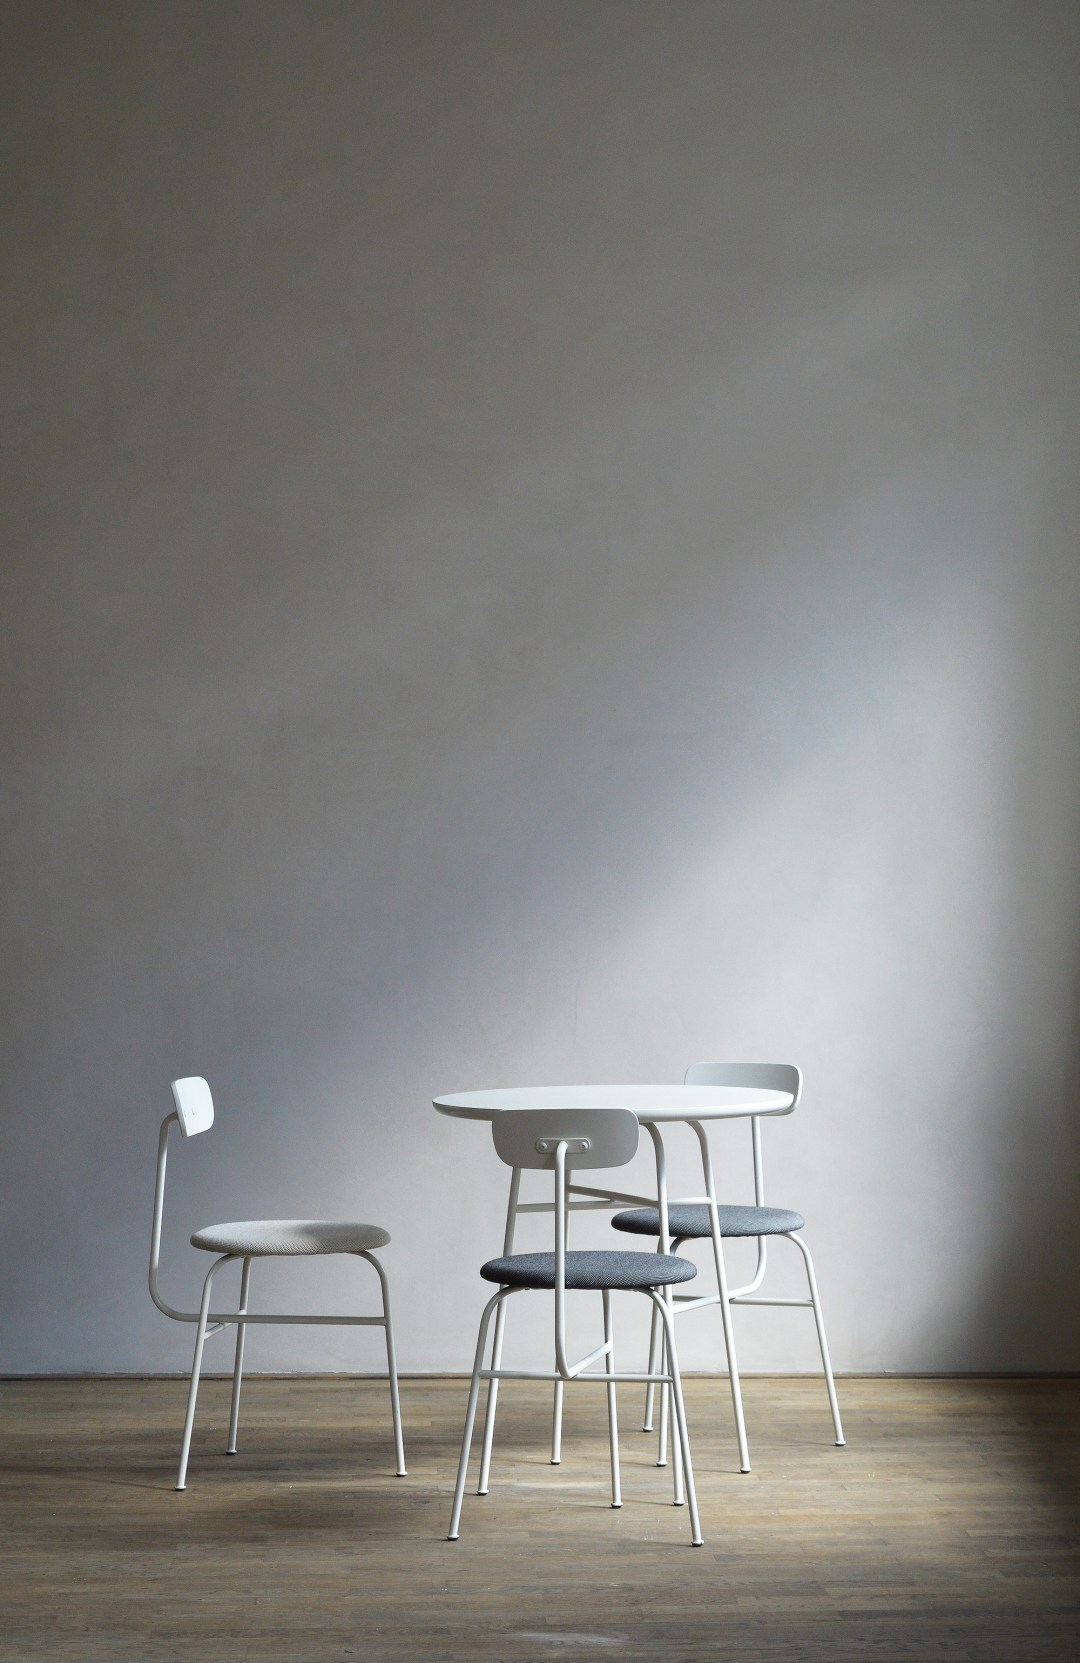 kinfolk gallery, menu chairs, norm architects, danish design, kinfolk